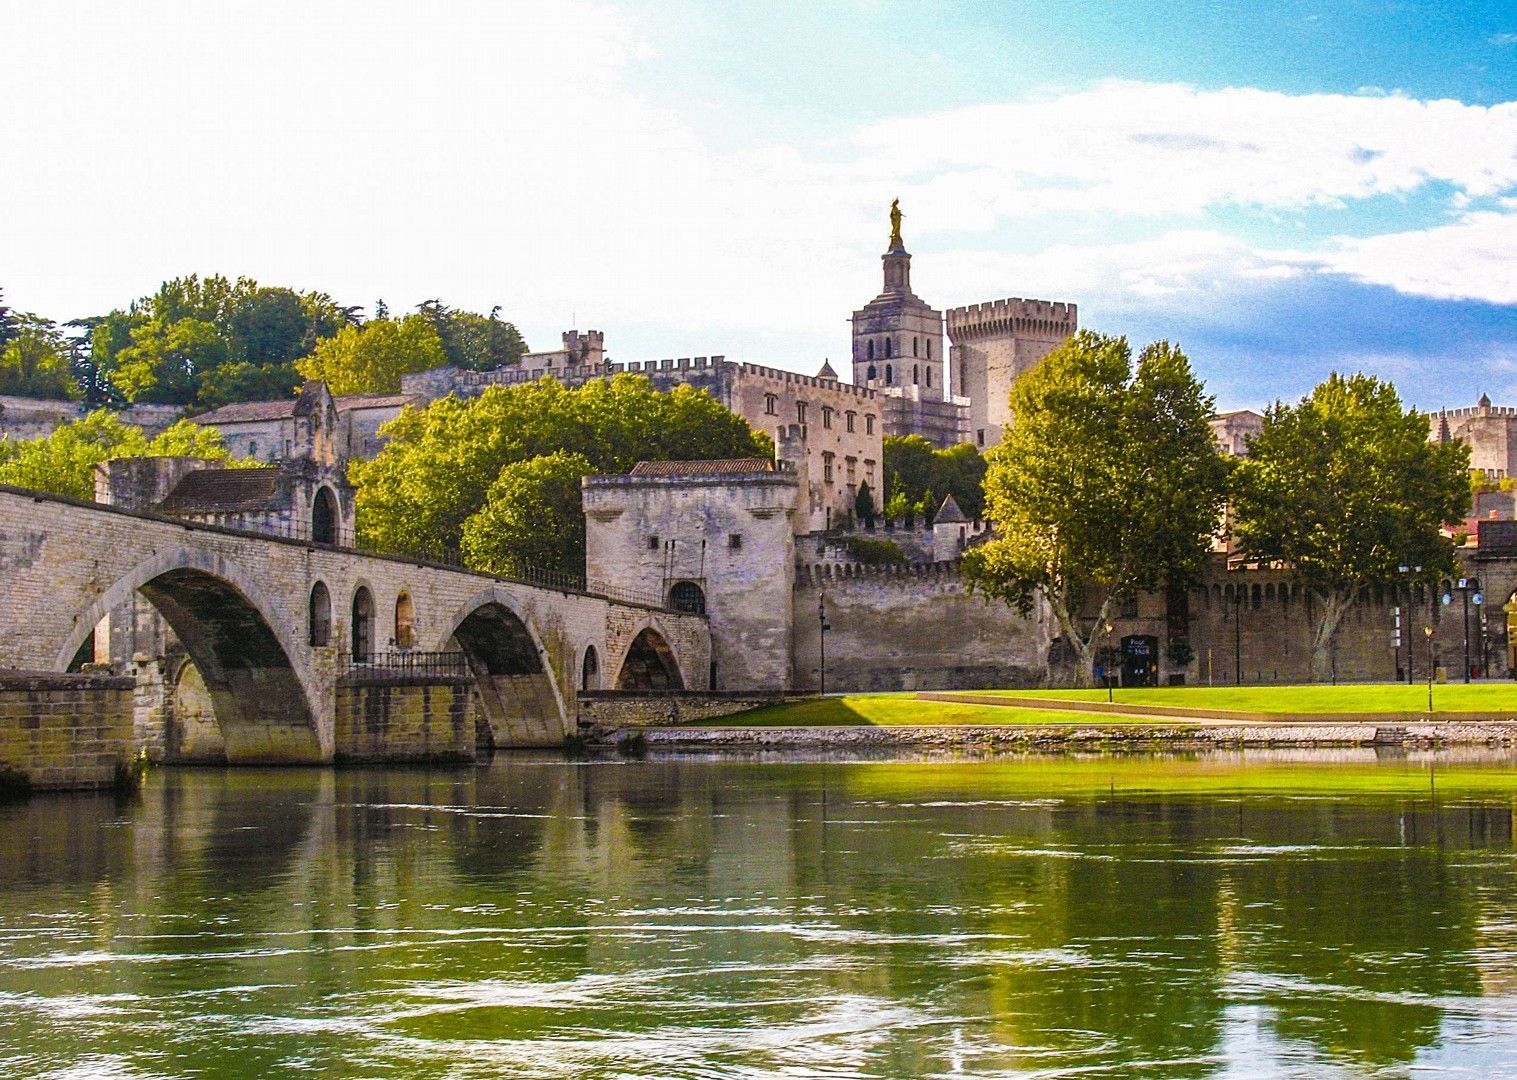 aigues-mortes-to-avignon-palais-des-papes-bike-and-boat-tour.jpg - France - Provence - Aigues-Mortes to Avignon - Bike and Barge Holiday - Leisure Cycling